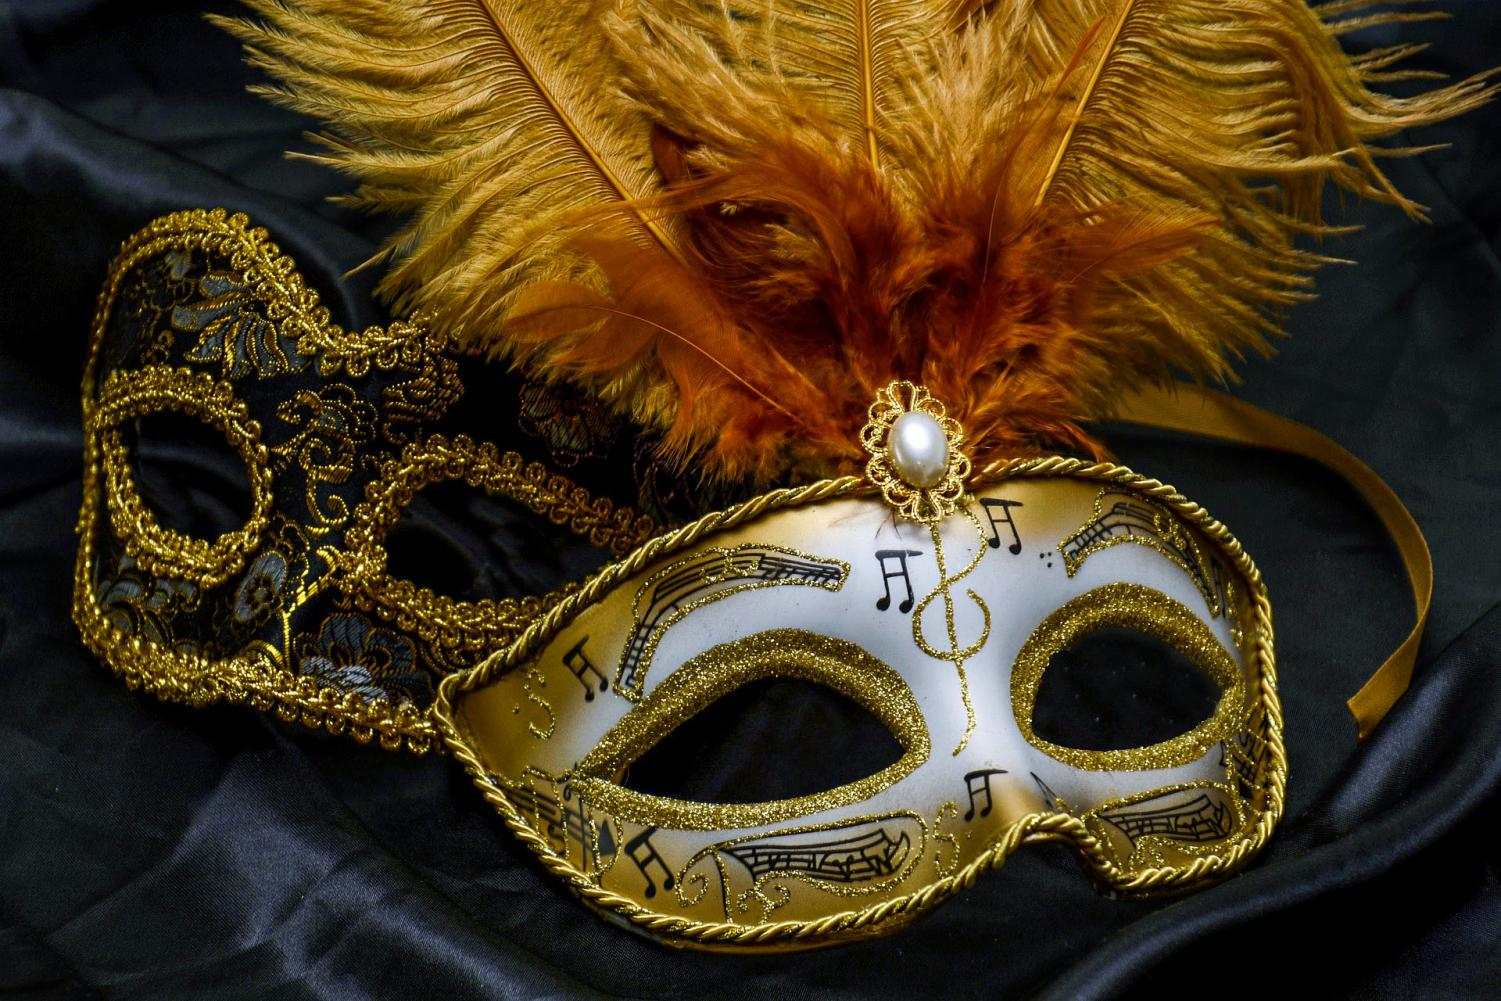 Tickets for the masquerade ball are $60, which includes dinner and the silent auction.